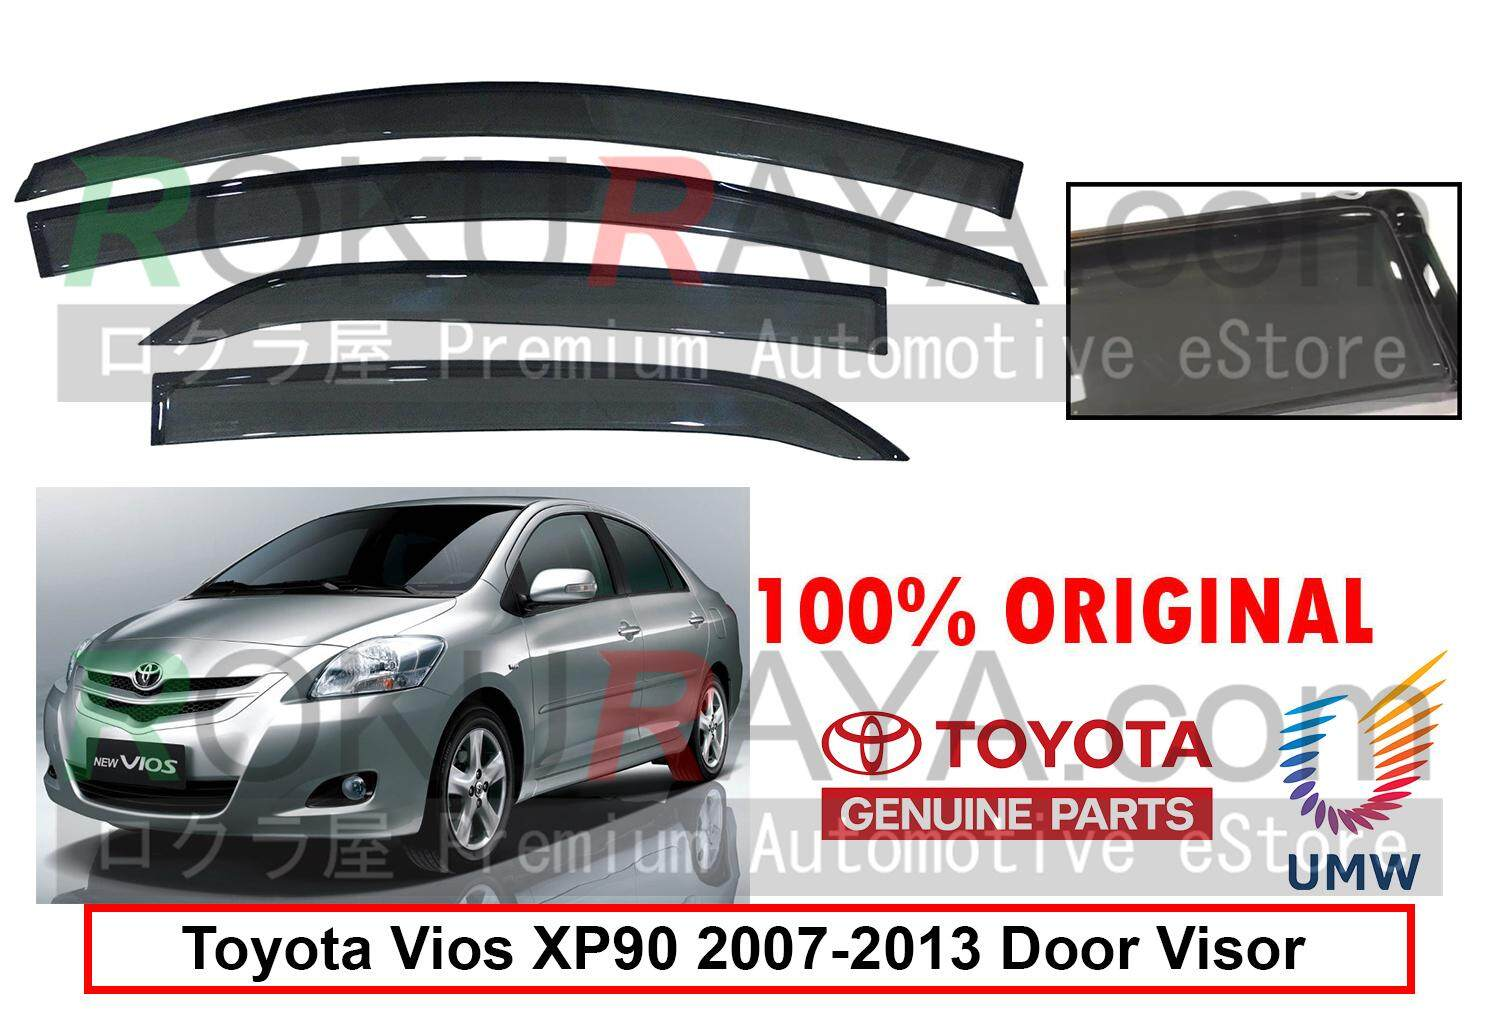 Toyota Products Accessories For The Best Prices In Malaysia